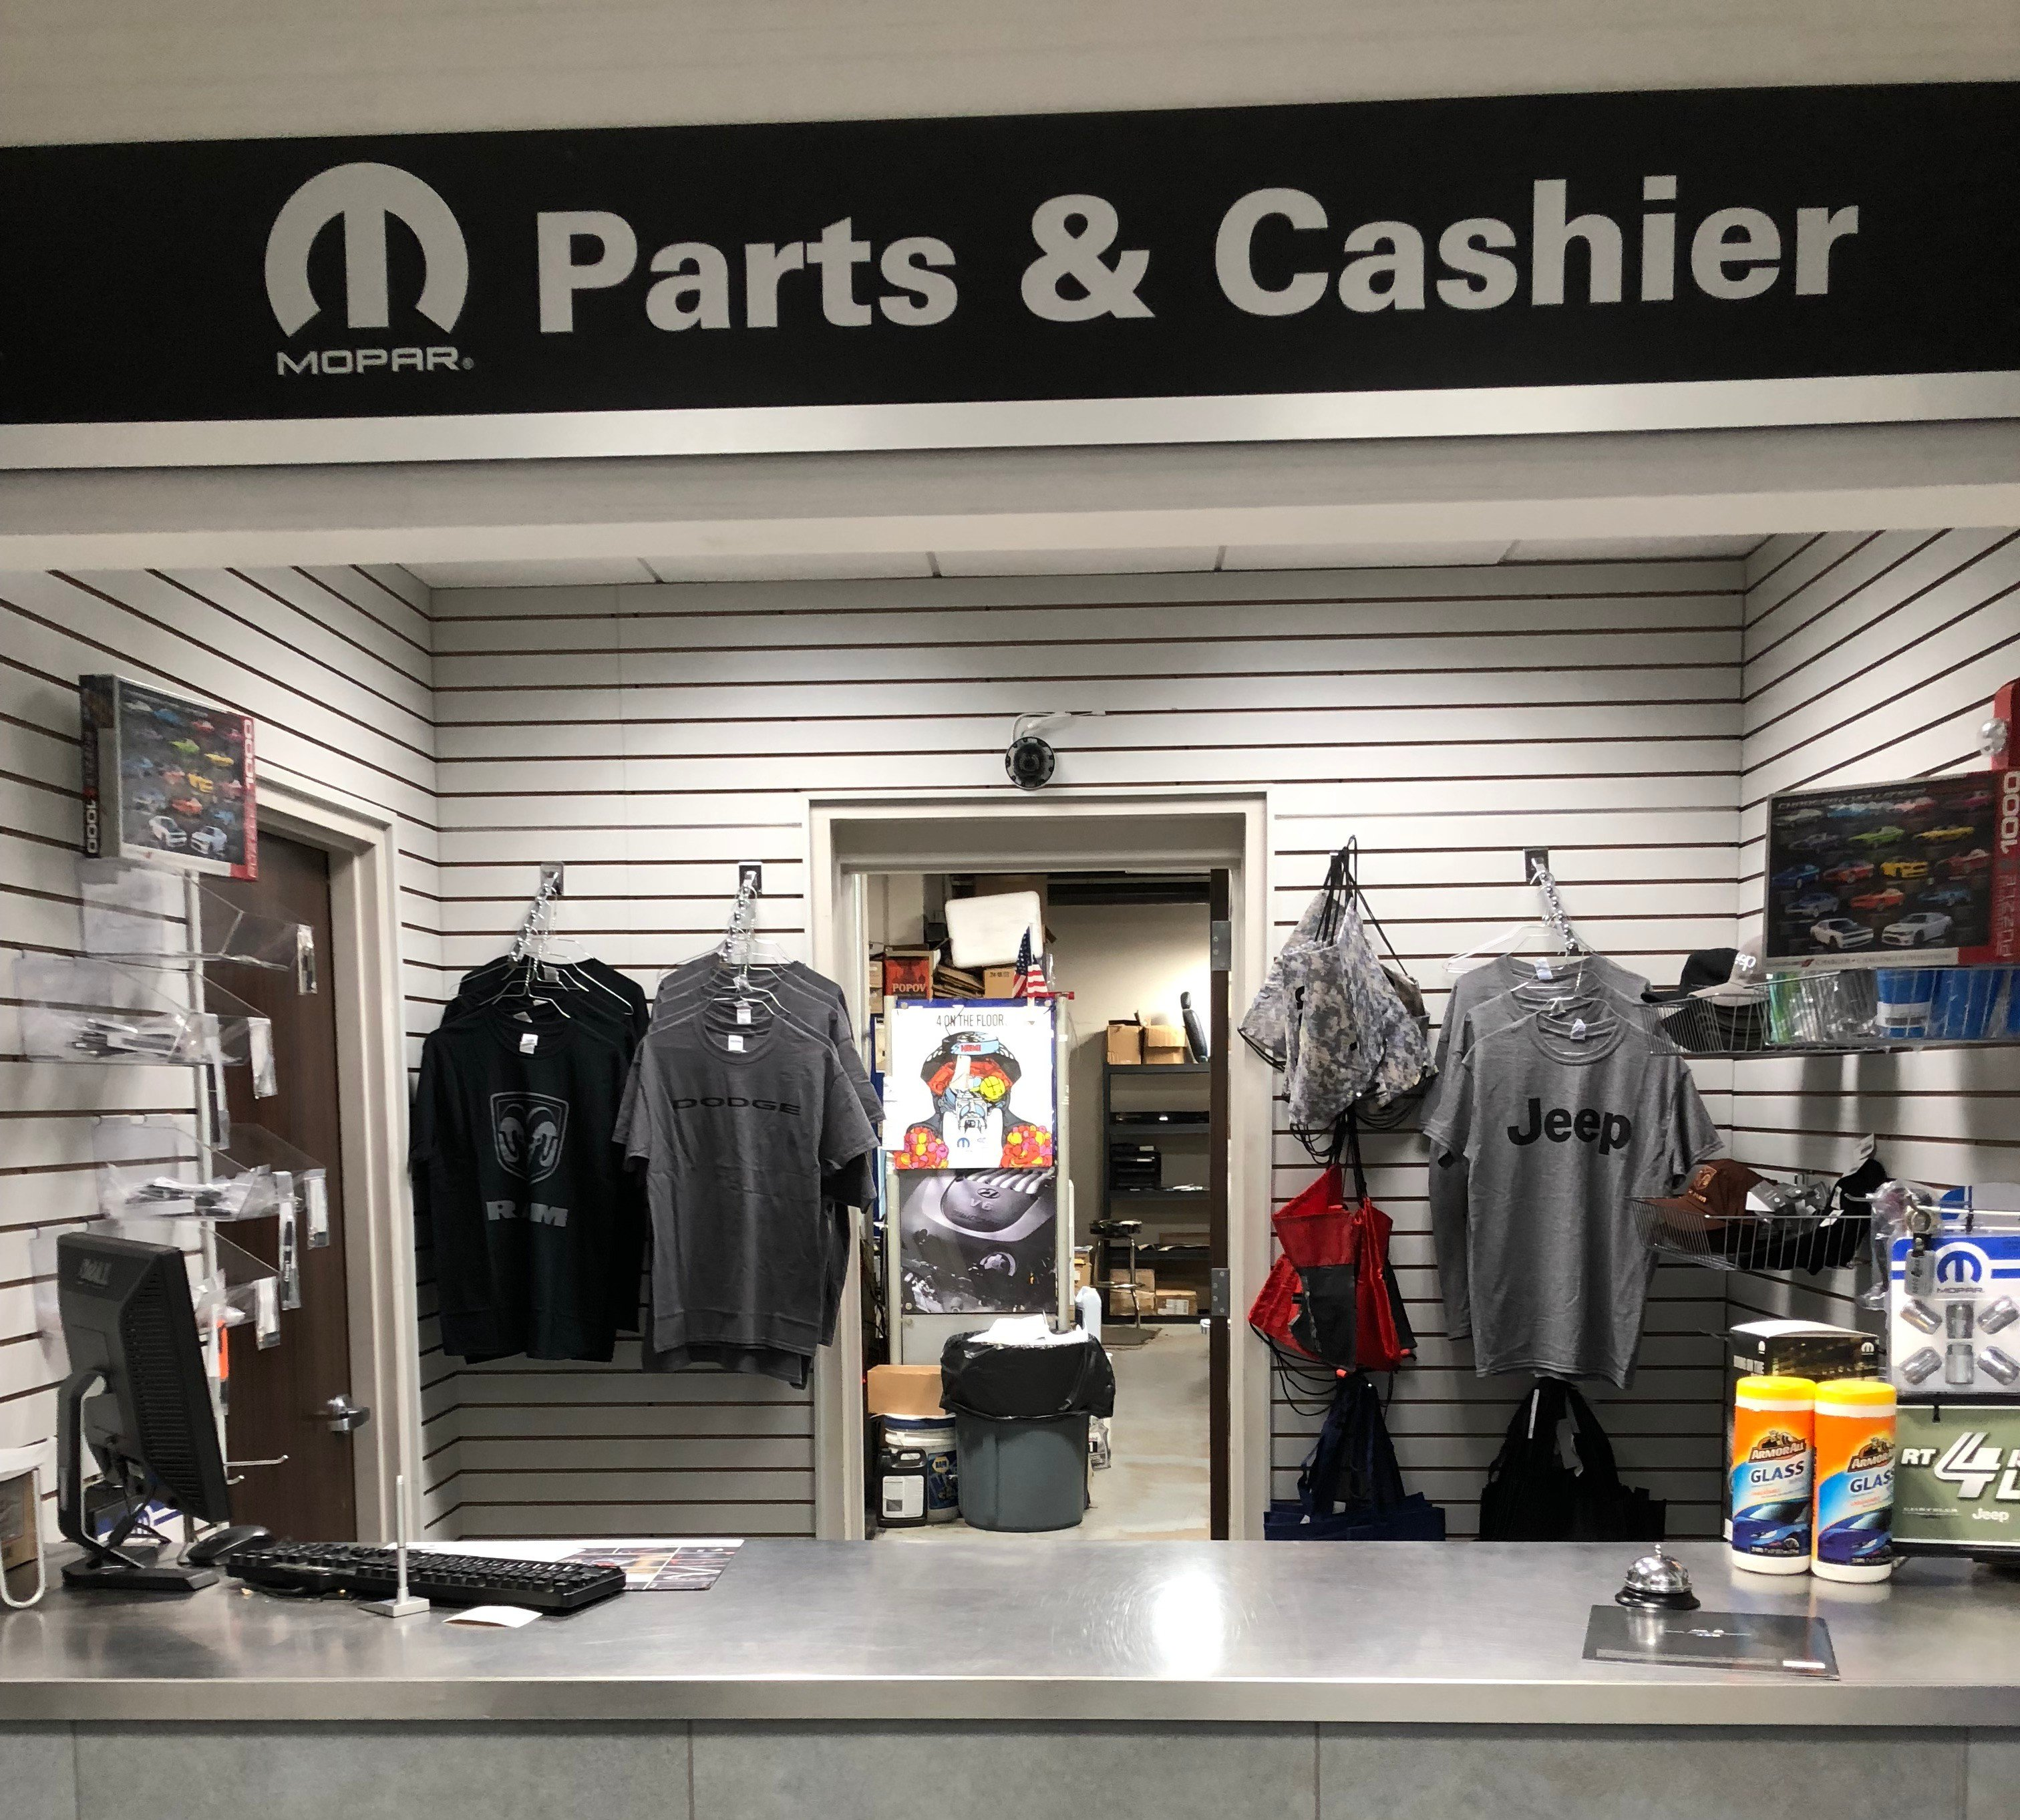 Mopart OEM Parts & Accessory Coupons